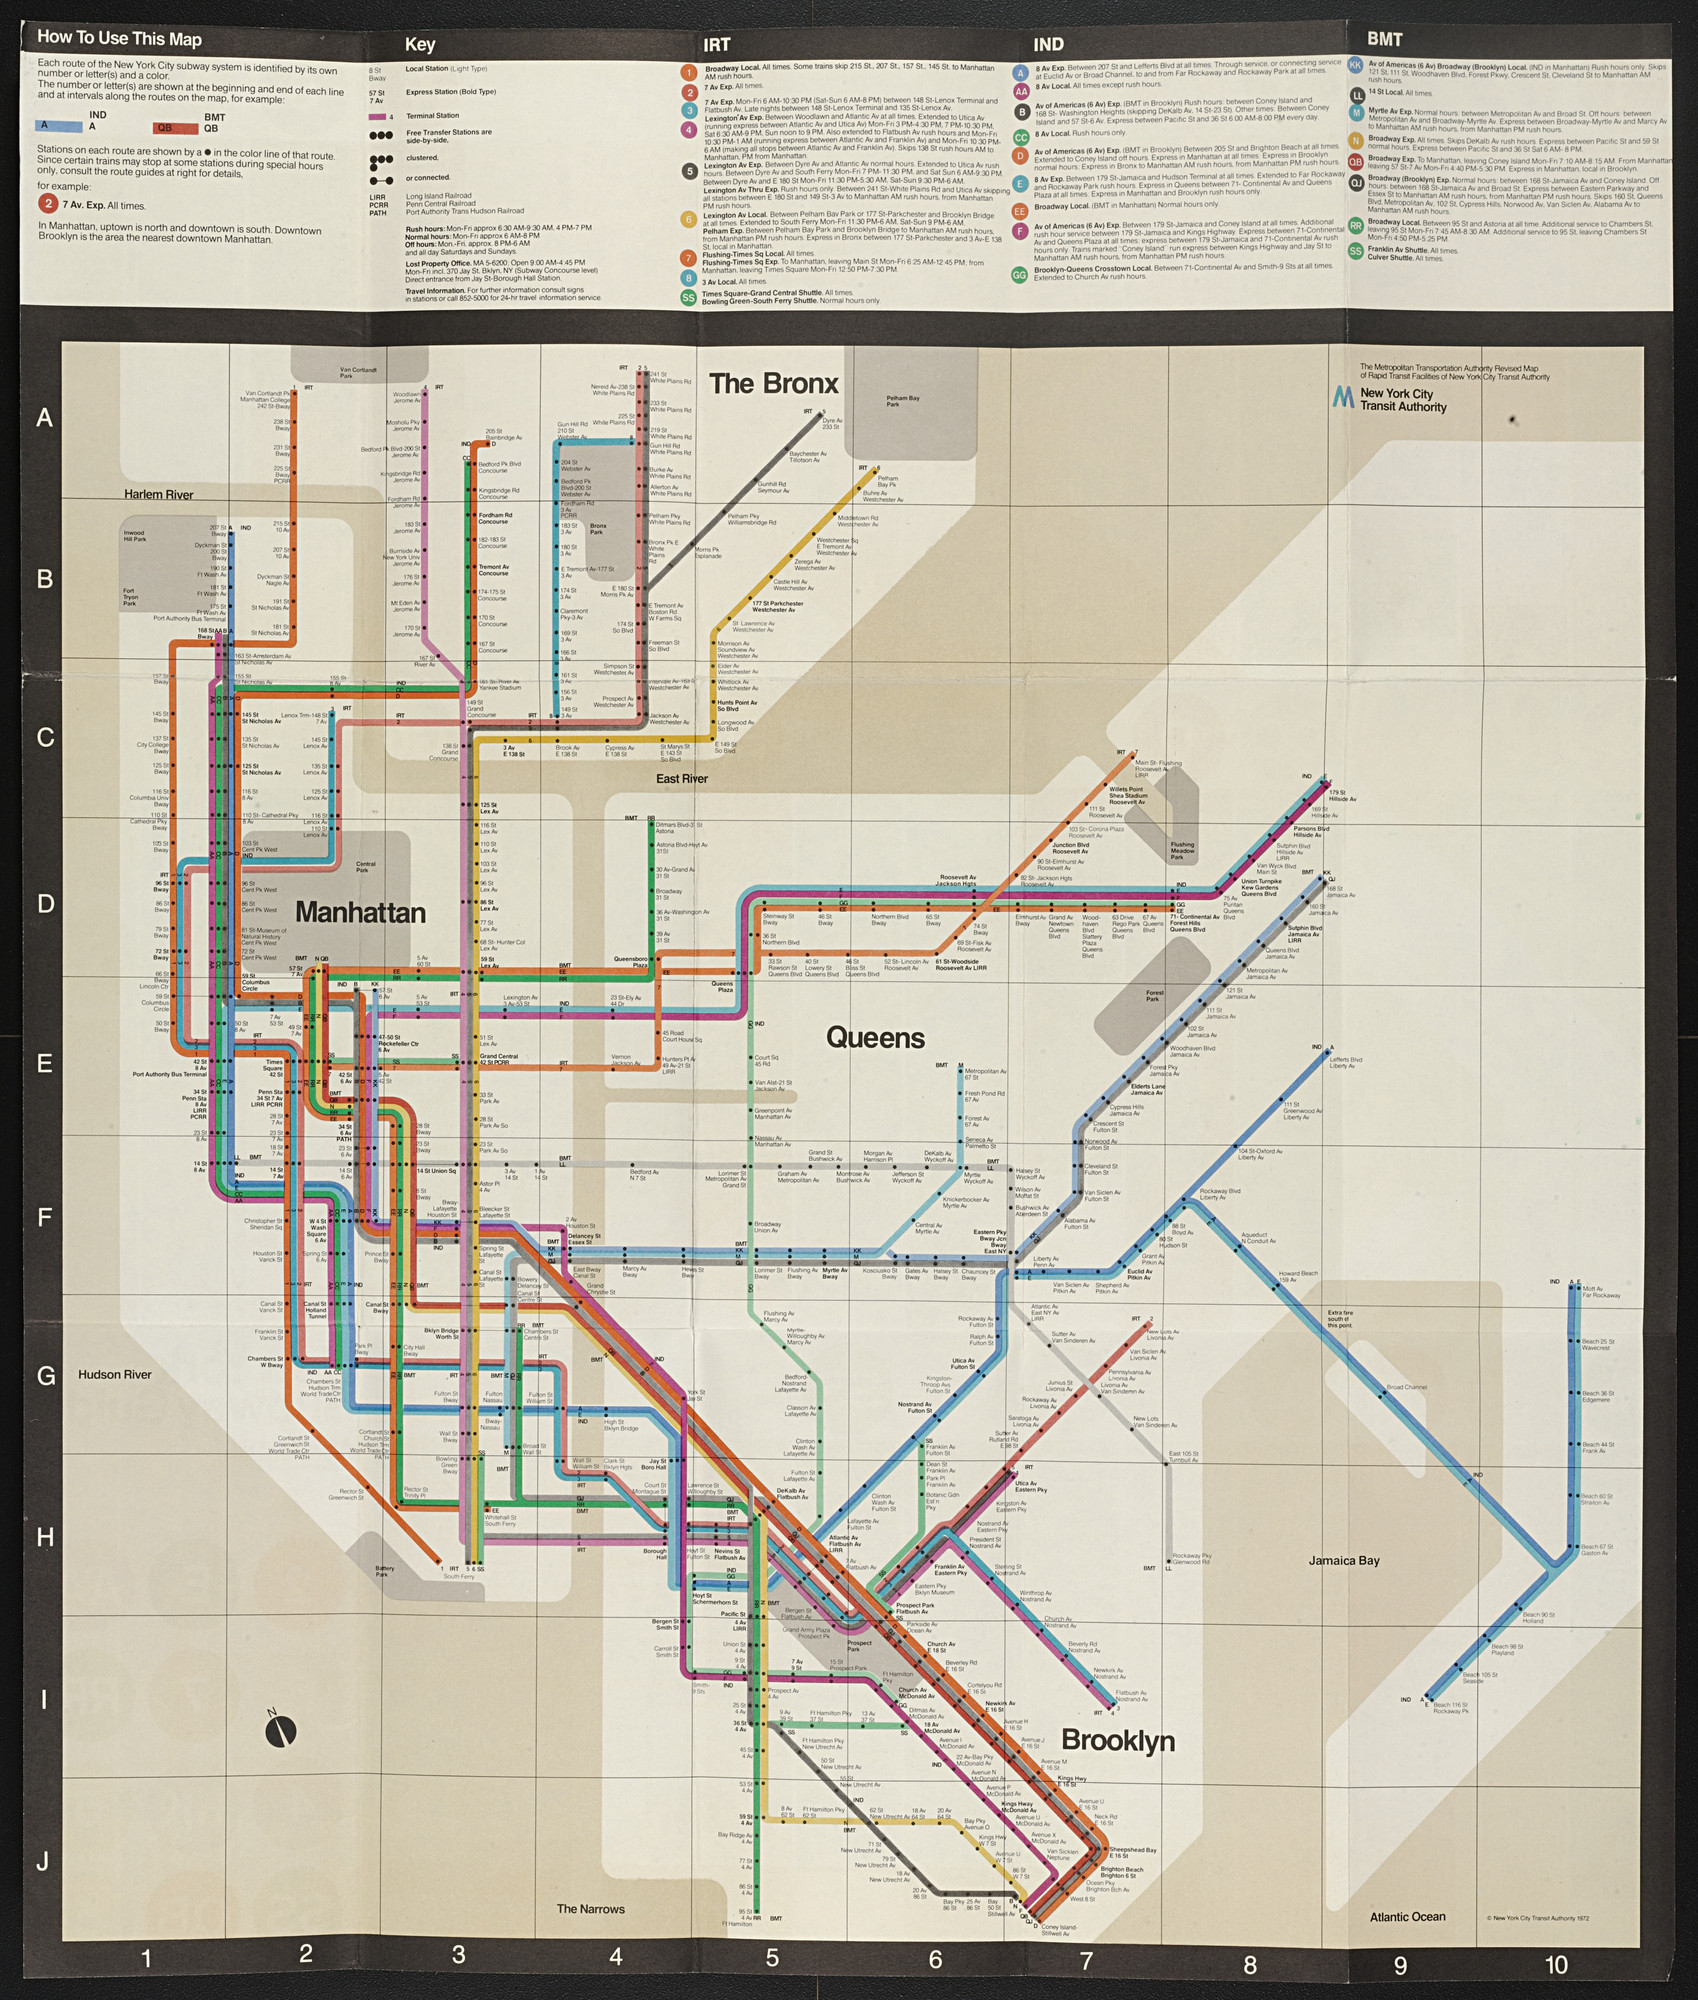 1980 Nyc Subway Map.Massimo Vignelli Moma